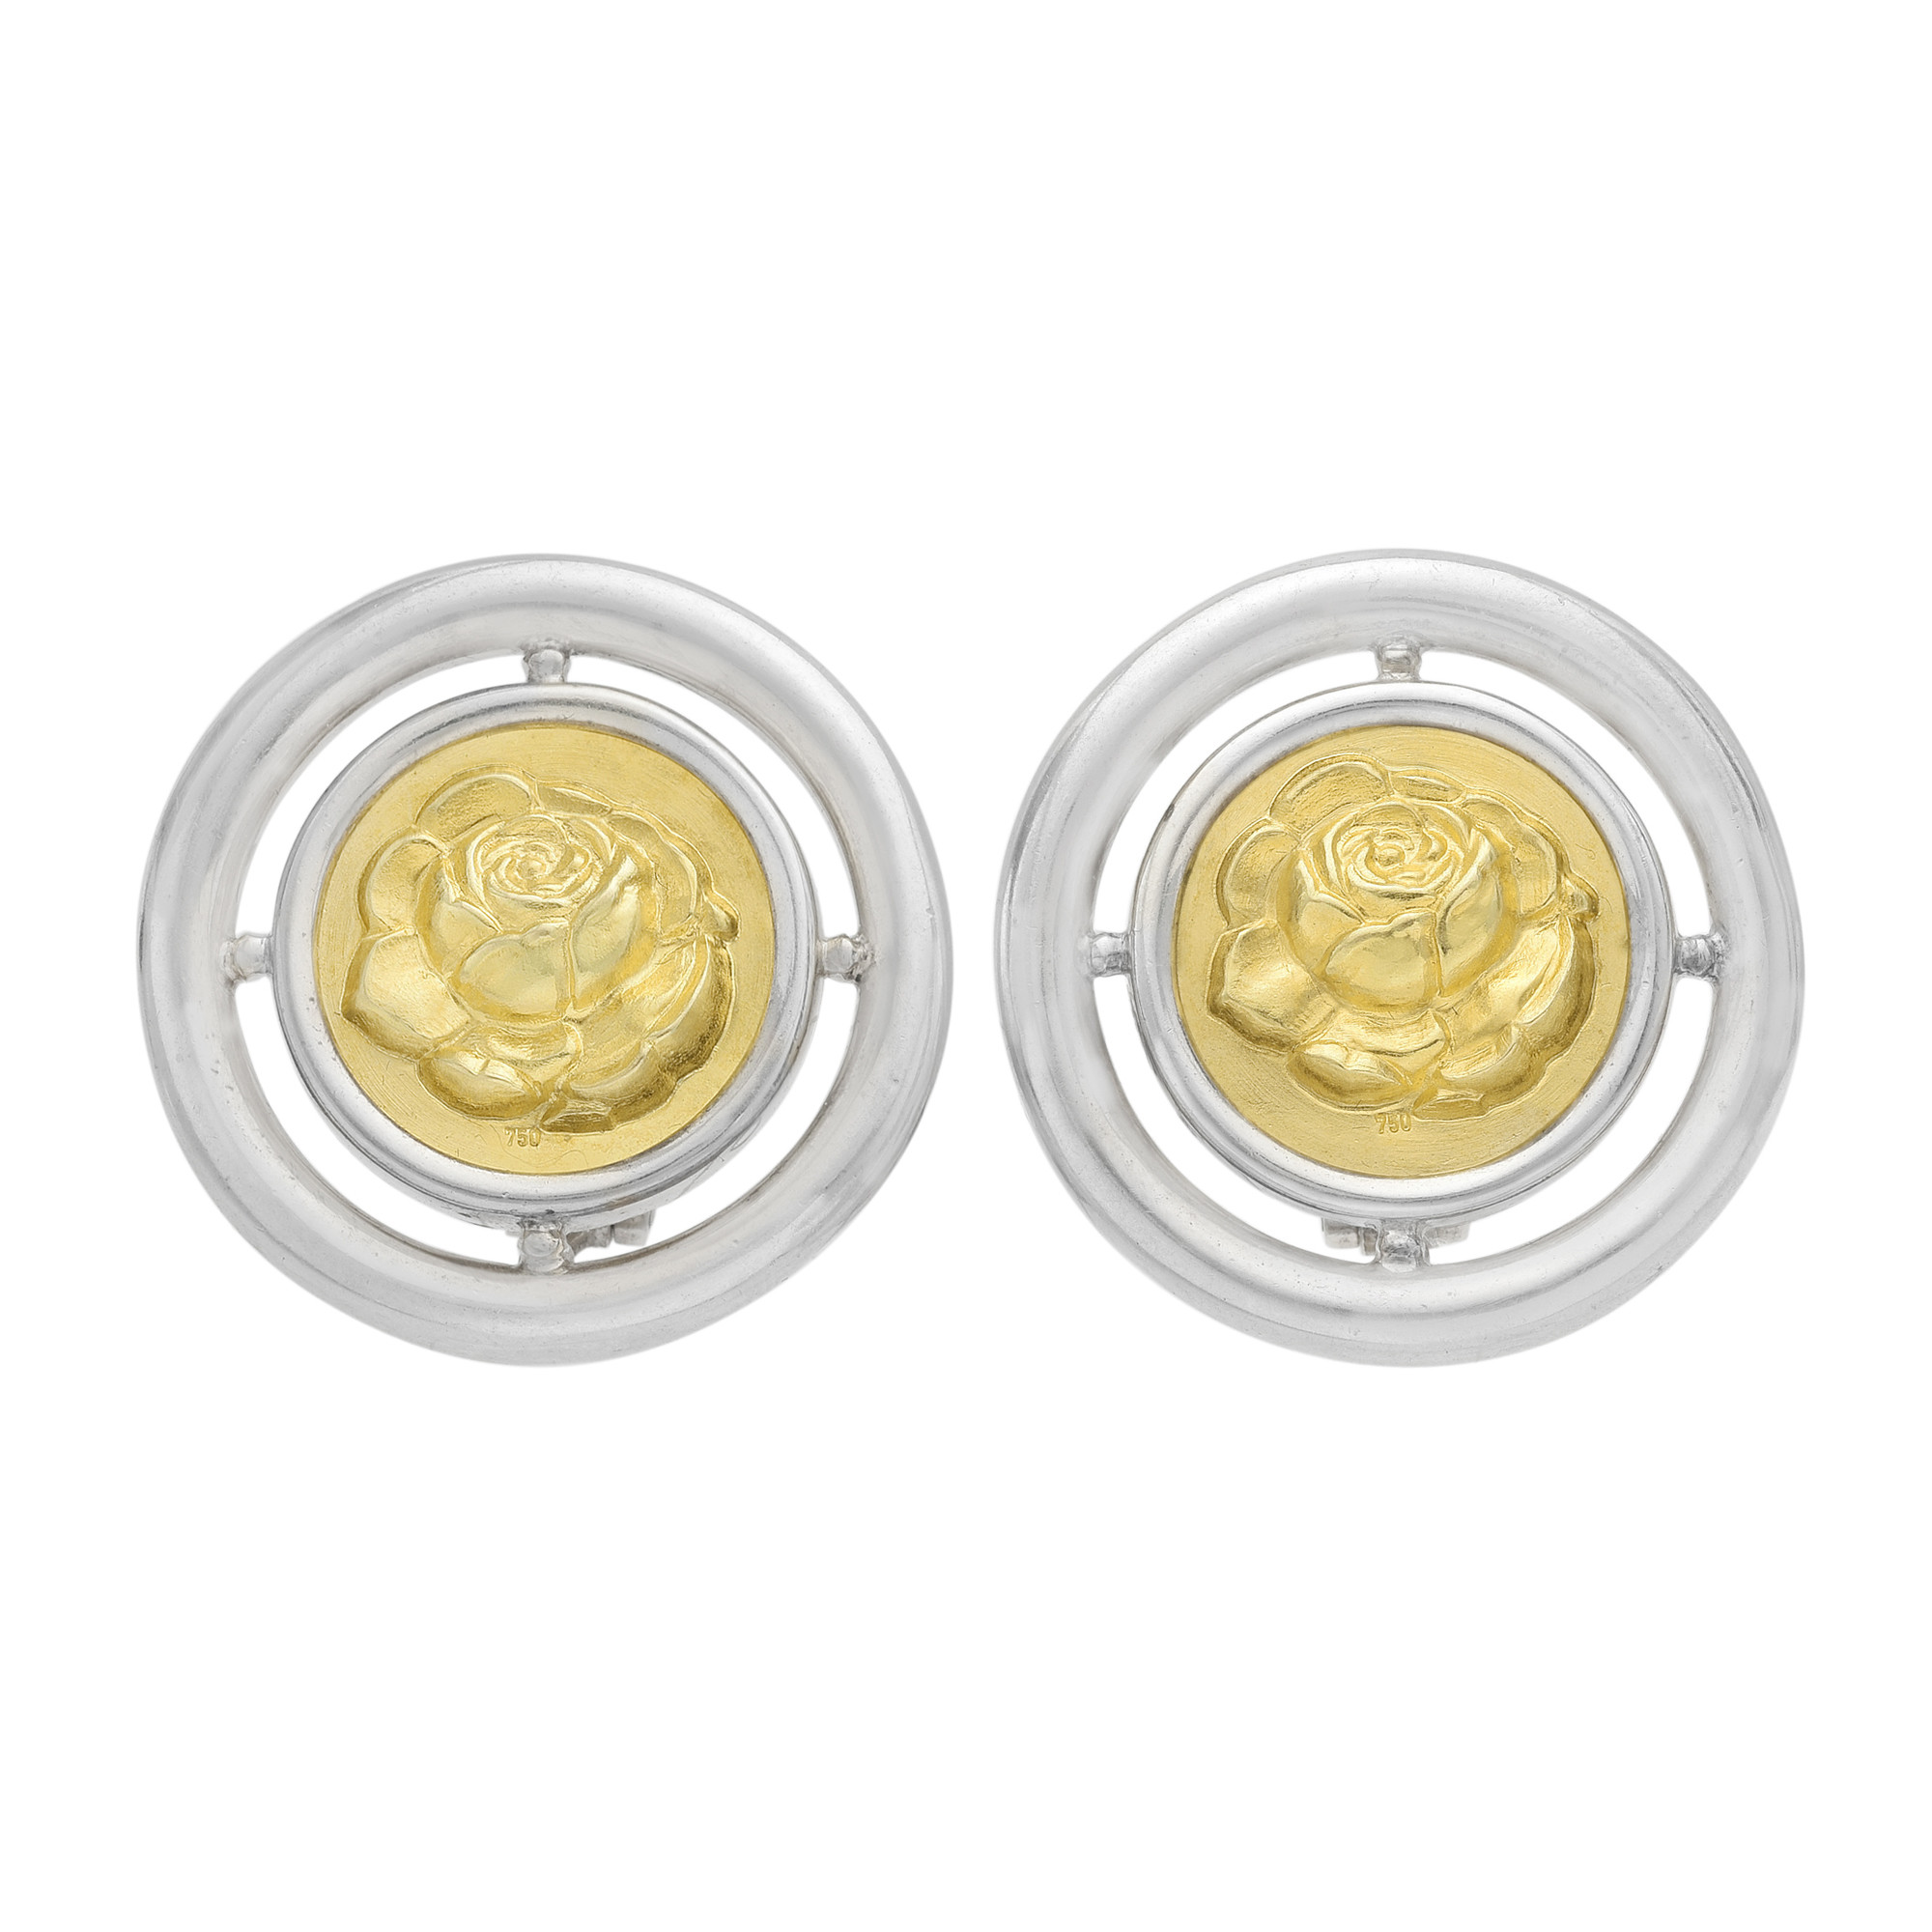 Silver & 18k Gold Circular Rose Earclips